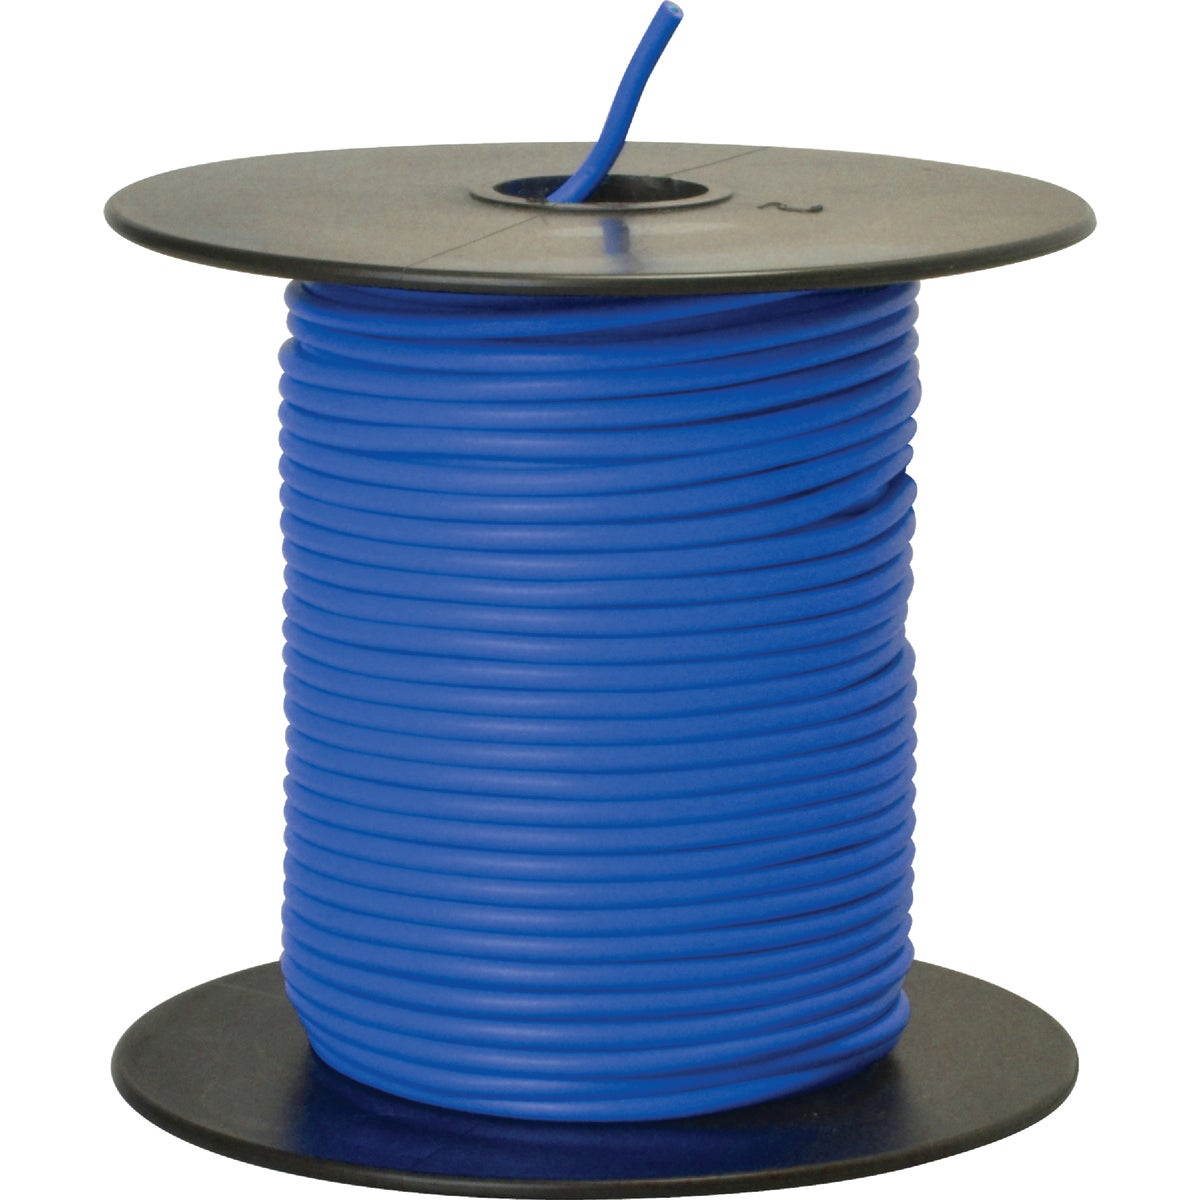 100' 18GA BLUE AUTO WIRE - 18-100-12 by Woods Wire Coleman